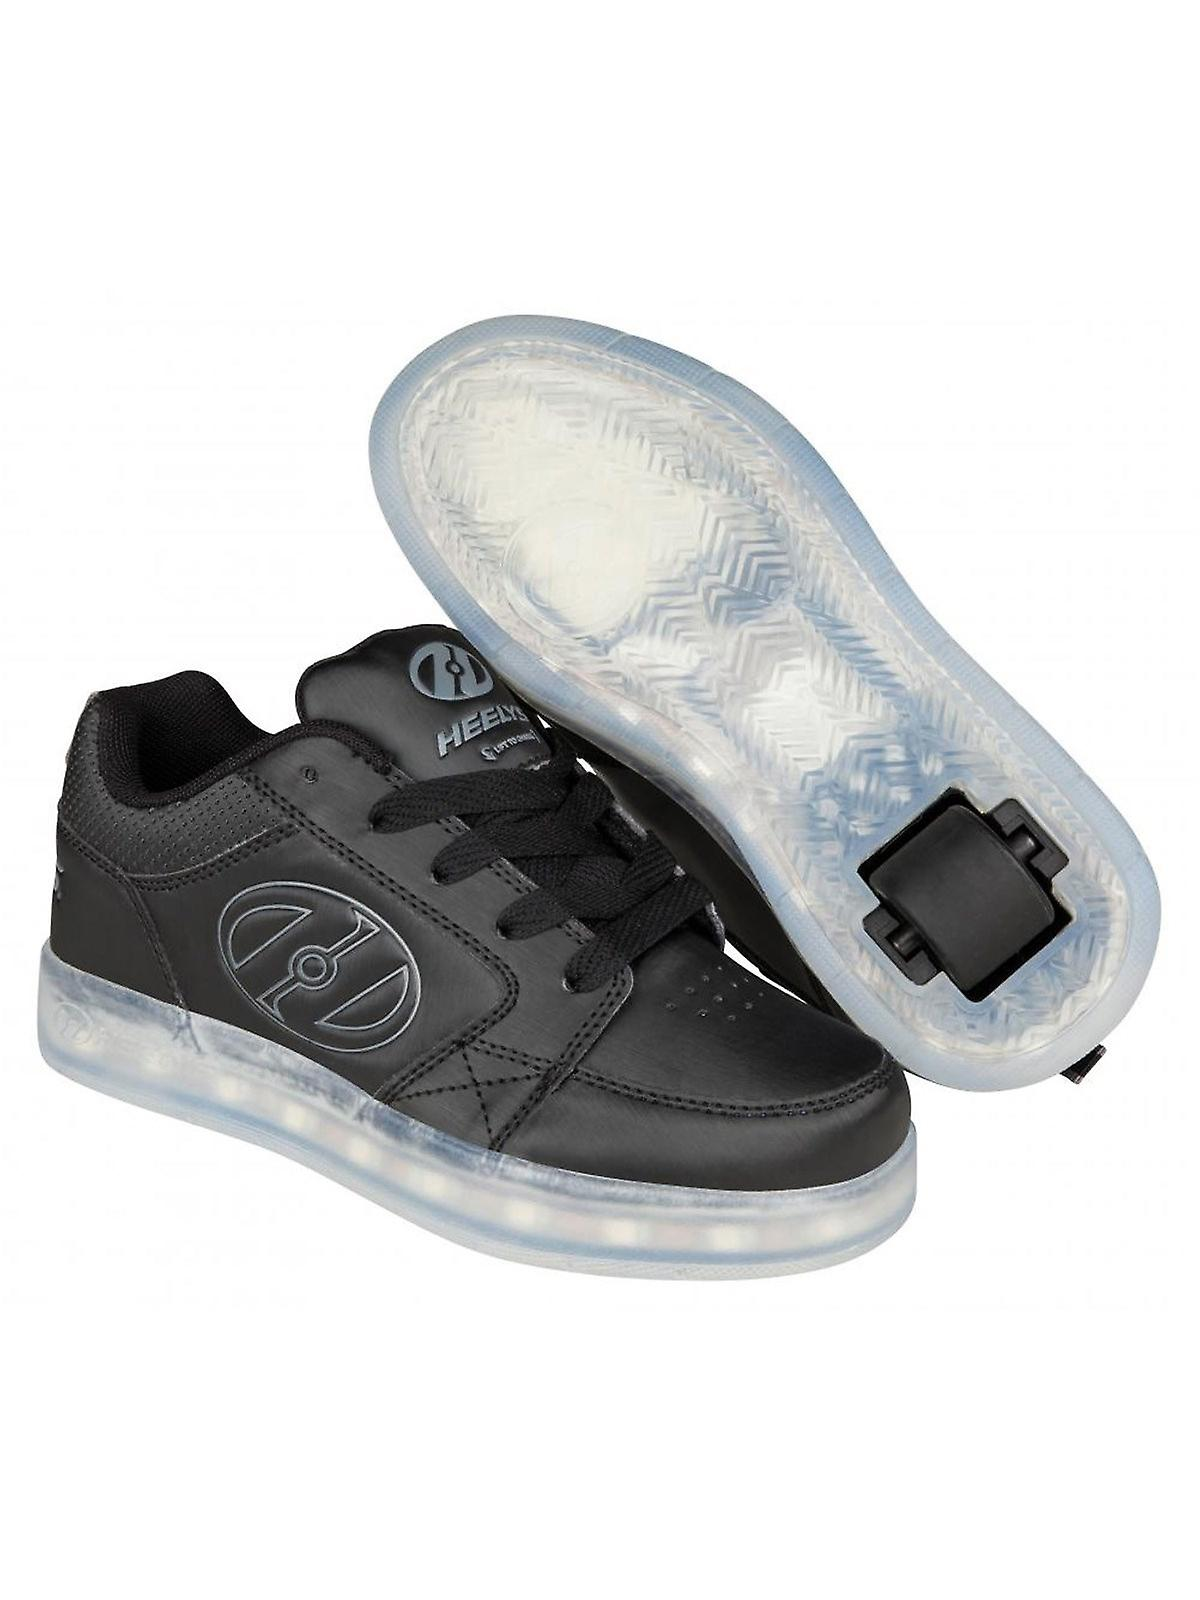 cheaper 87f99 9c596 Heelys Black-Grey Premium 2 Lo Kids One Wheel Shoe